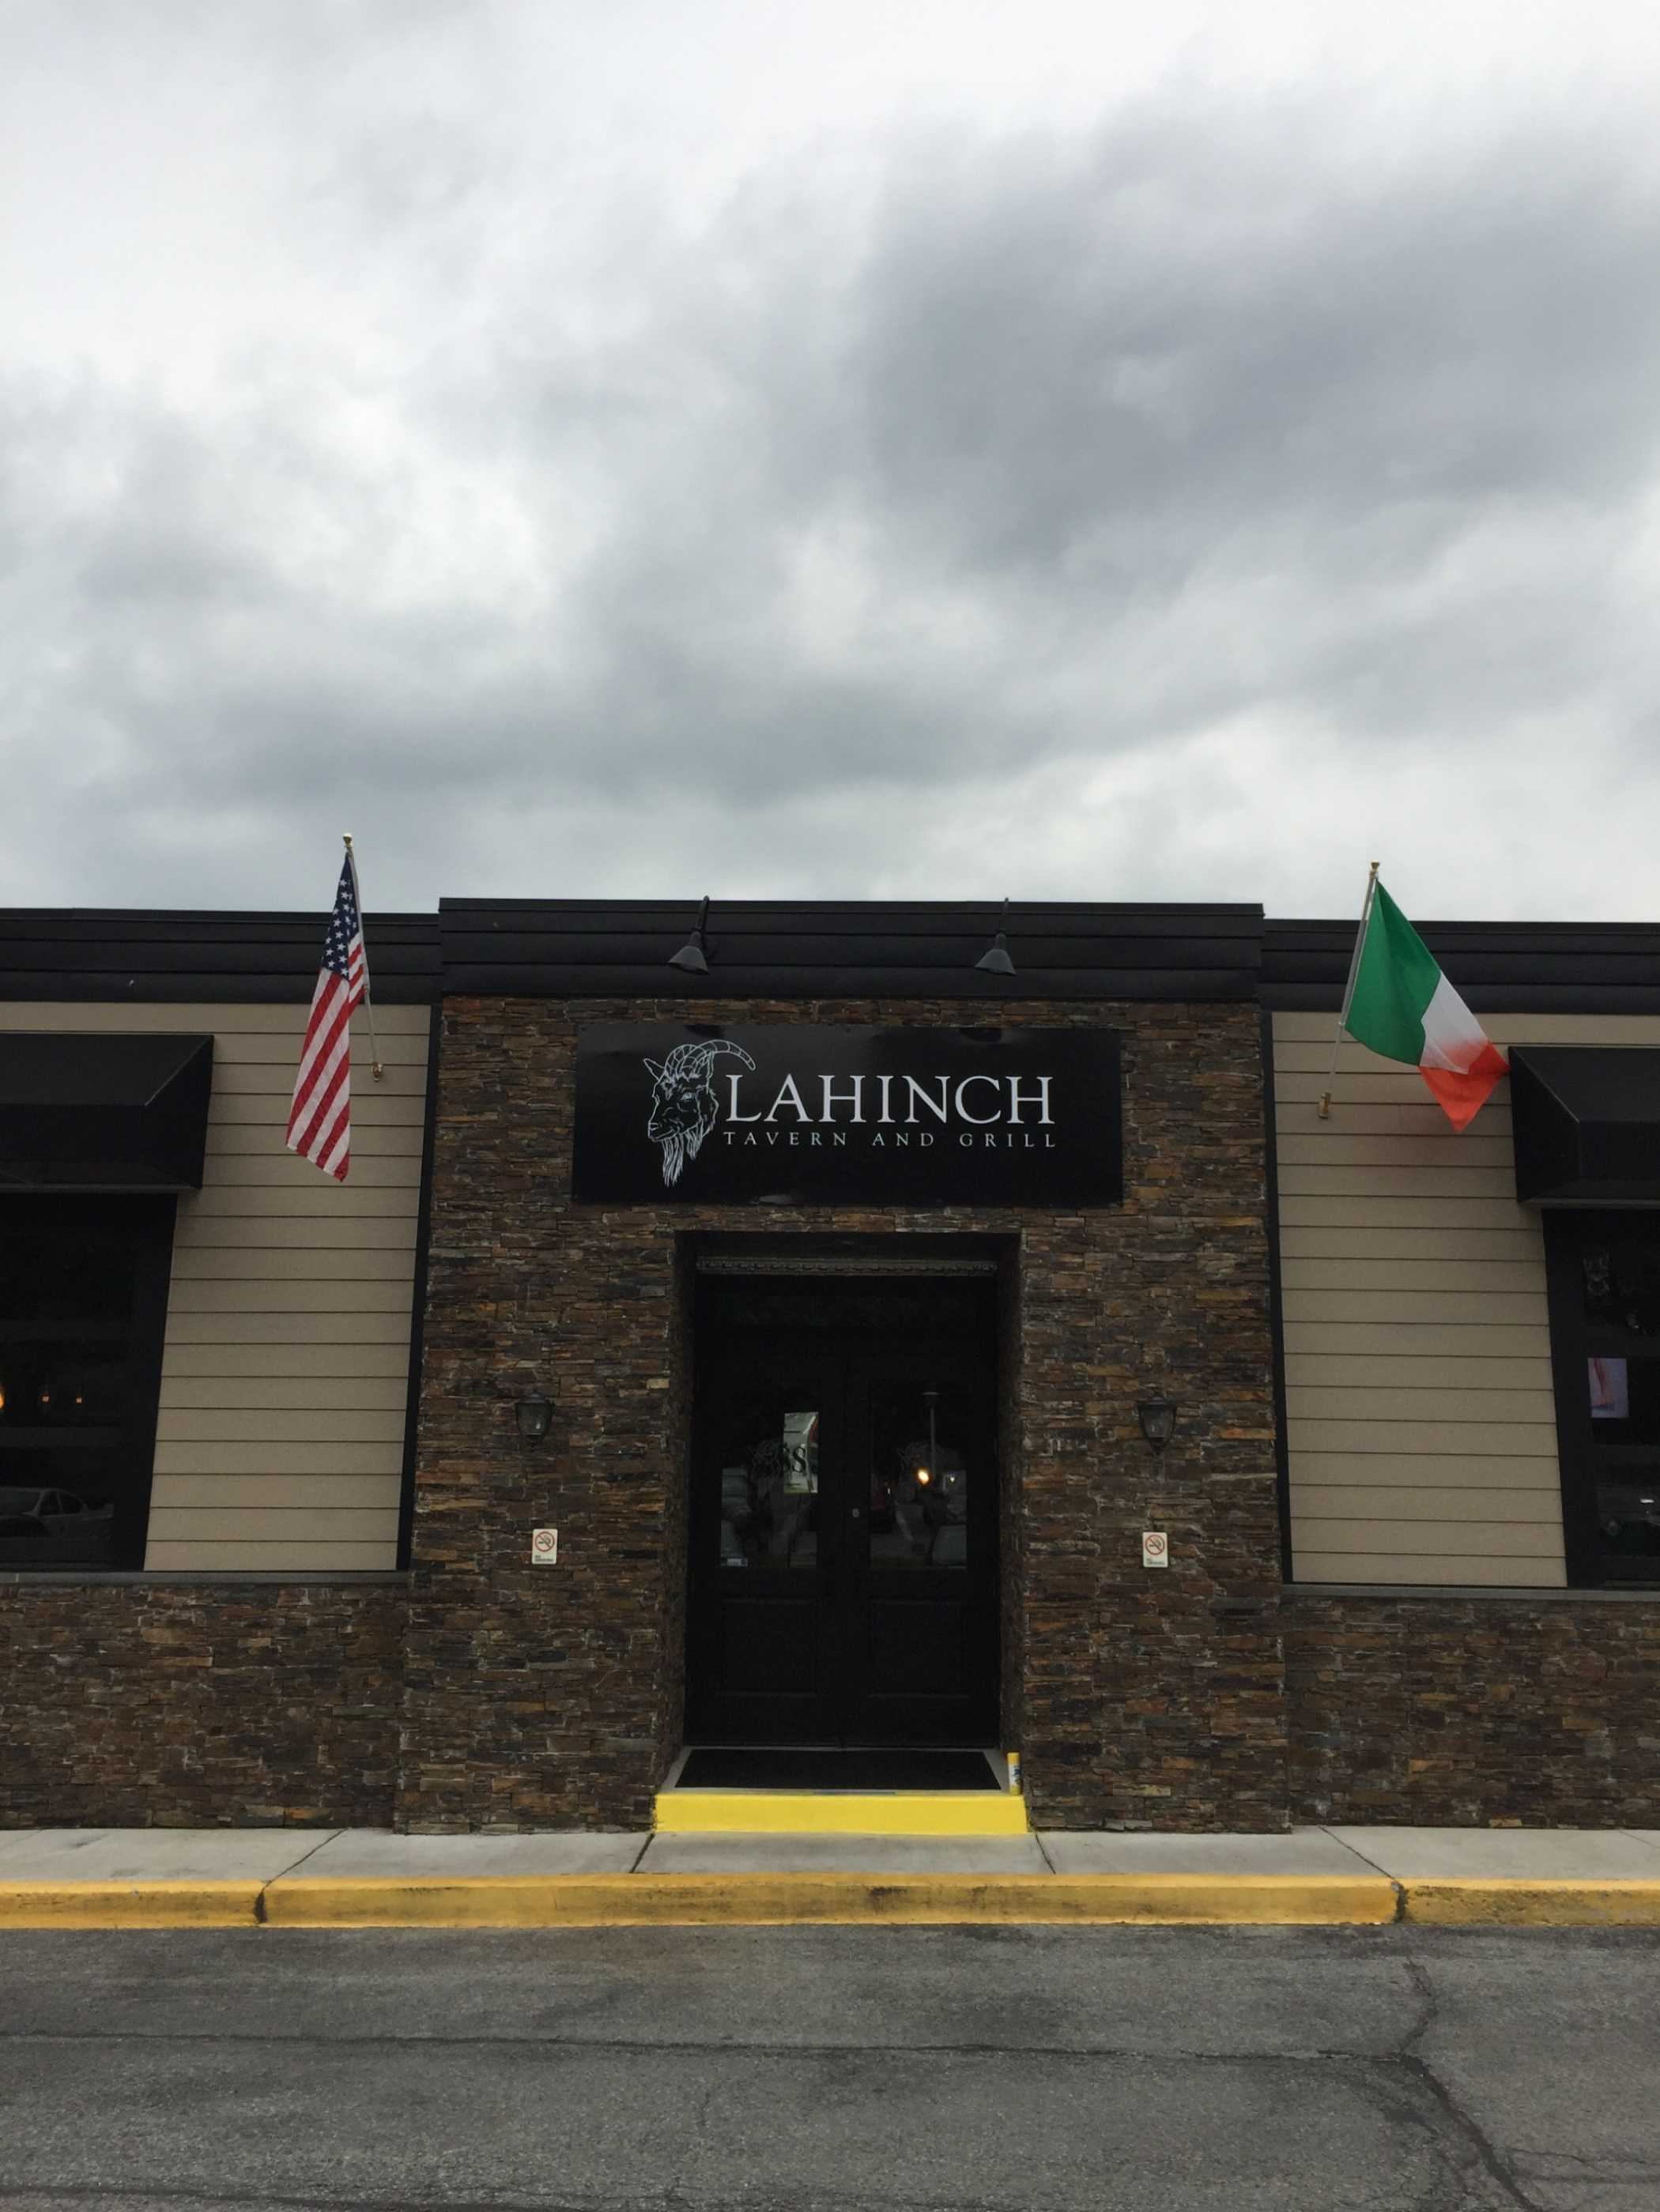 Replacing Benny's Bar and Grill, Lahinch Tavern and Grill opened April 20 and features American, traditional Irish and even vegan cuisine.